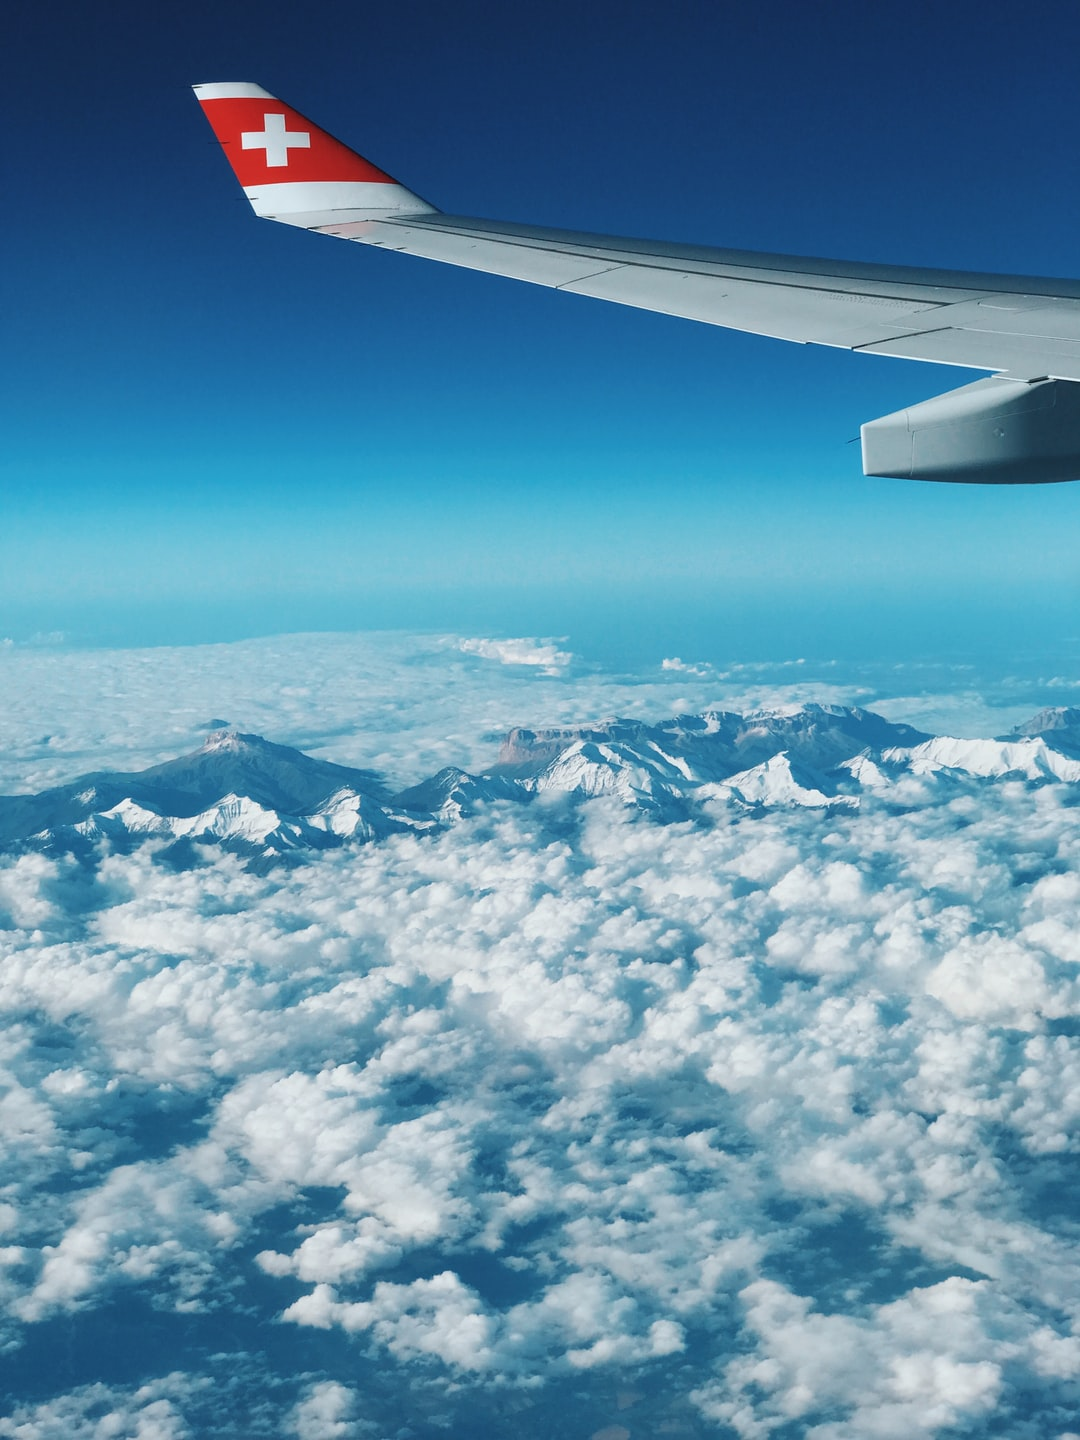 27+ Airplane Window Pictures | Download Free Images & Stock